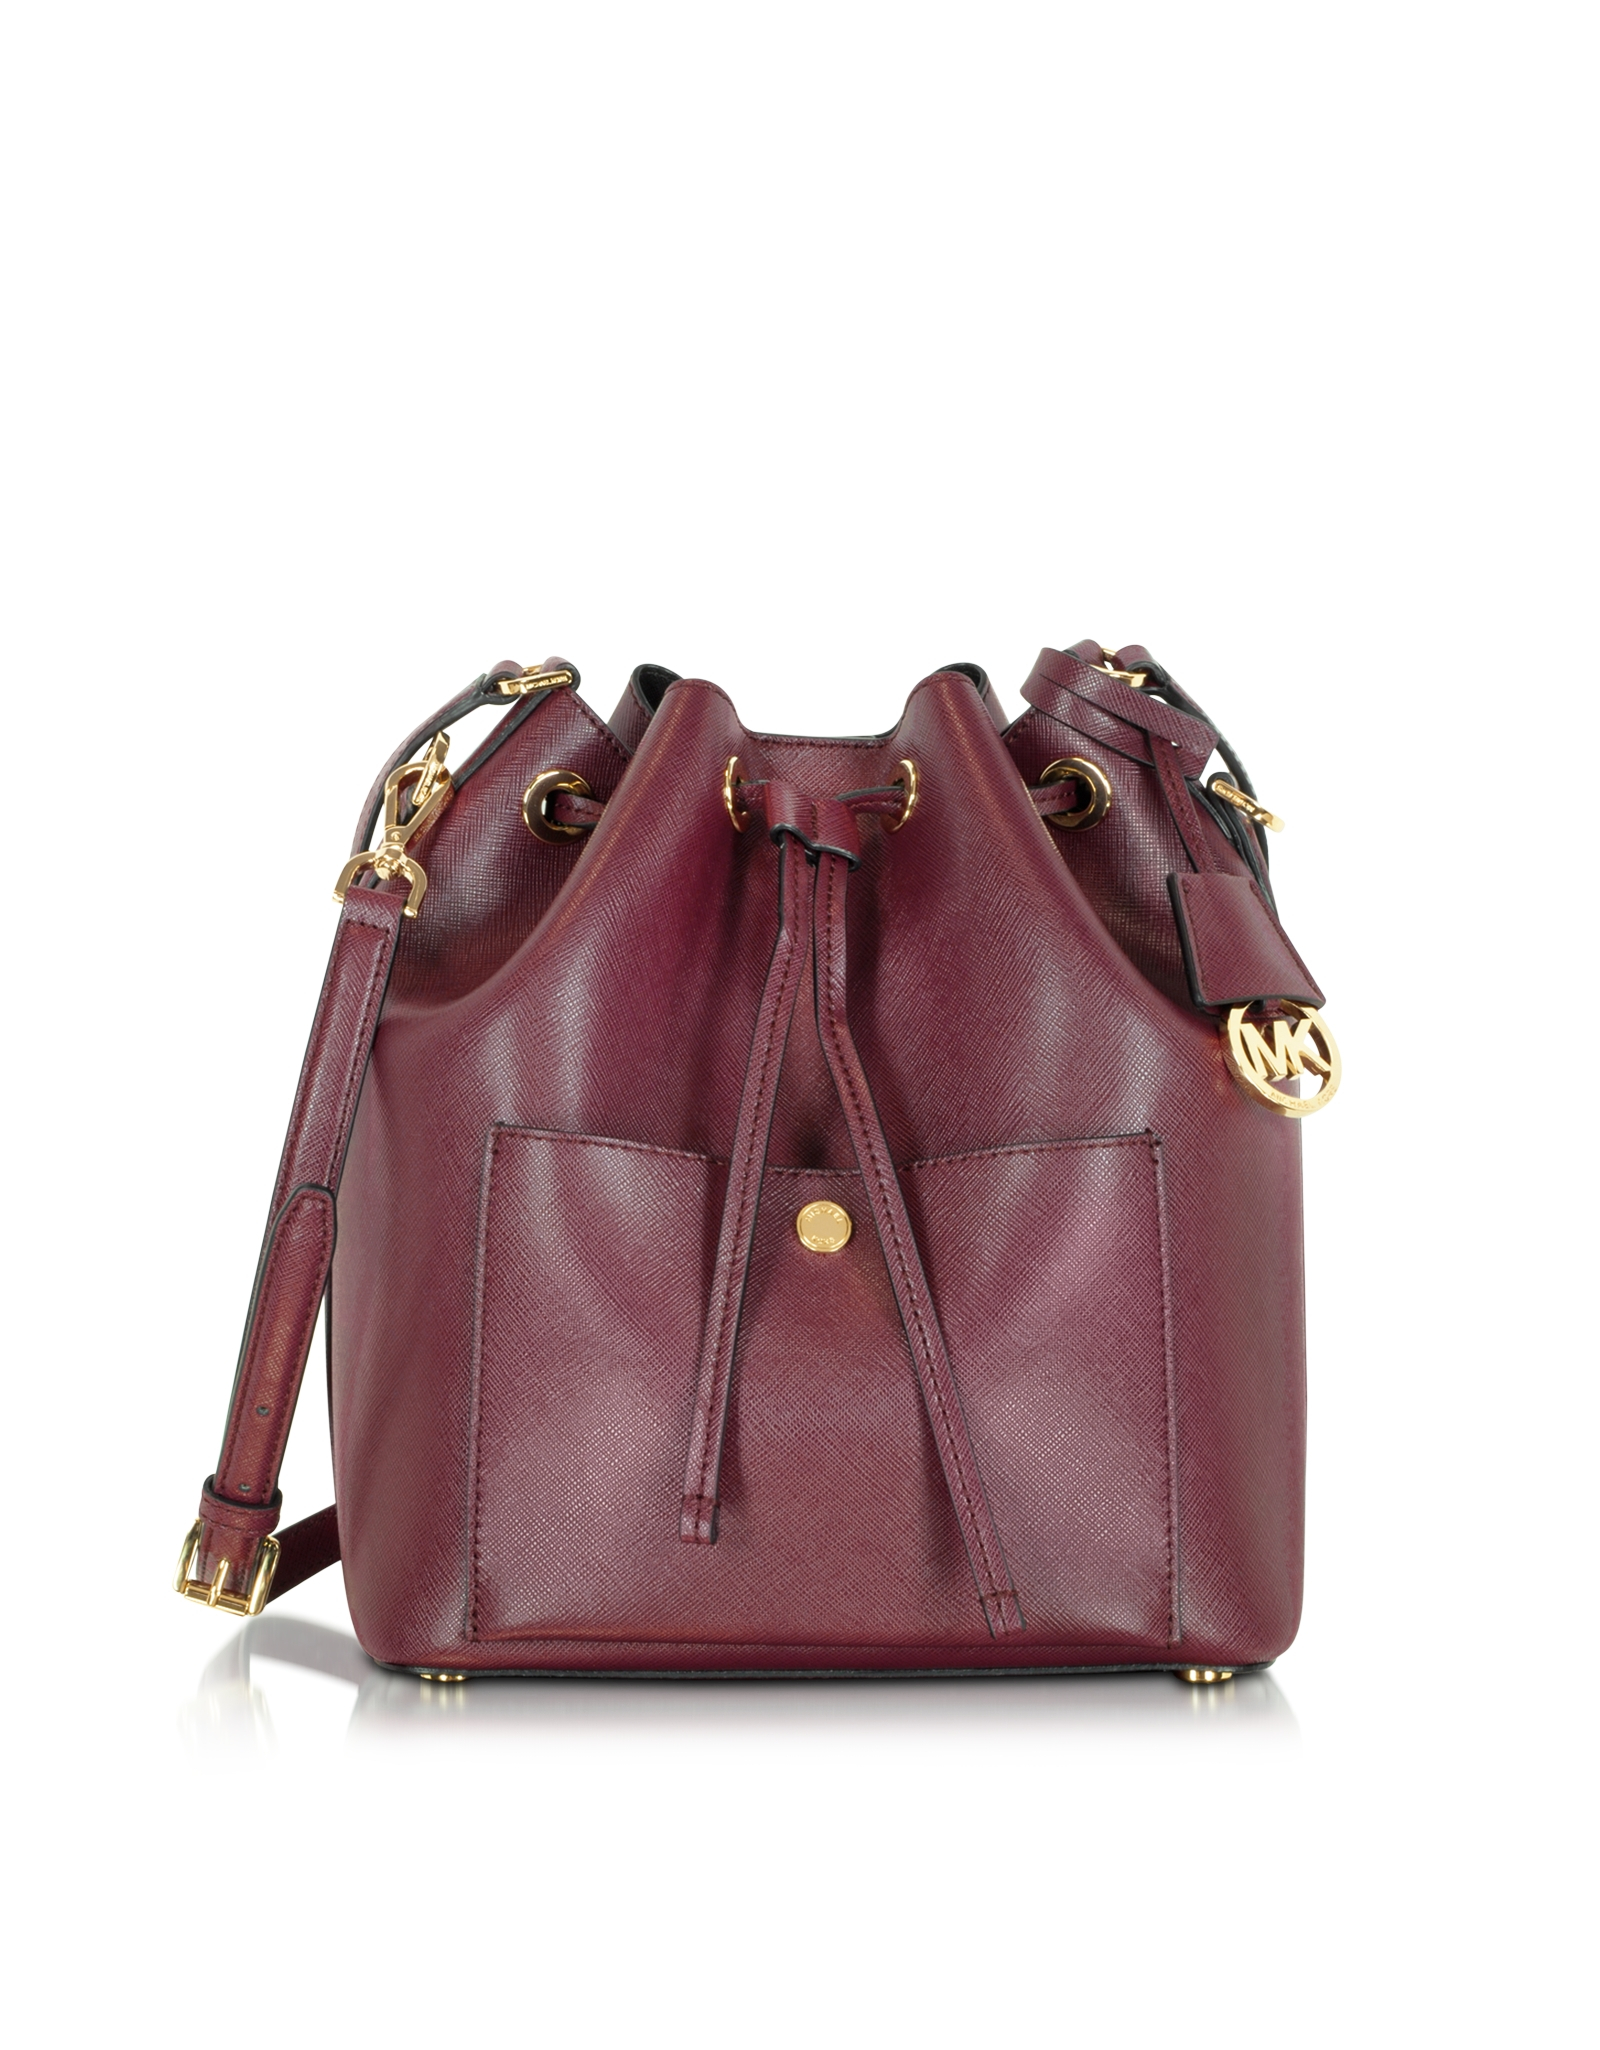 a16c98a60b2c Leather Bucket Bag With Purple. Kooba Slouchy New Bucket Purple Thistle  Leather Shoulder Bag - Tradesy Lyst - Michael Kors Greenwich ...